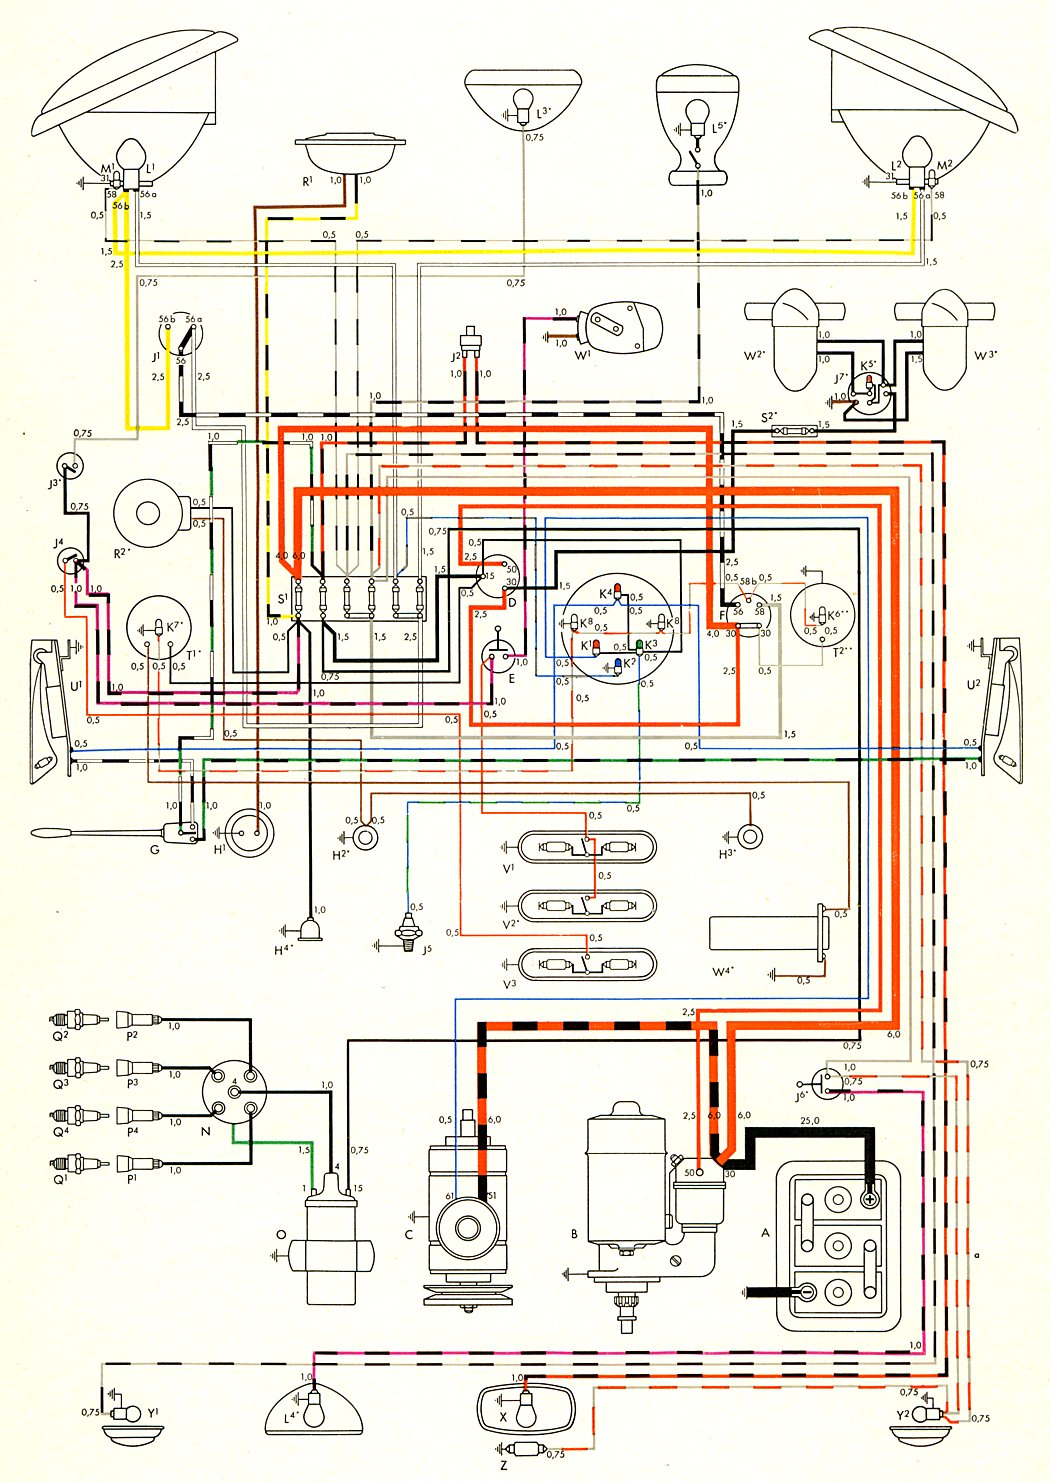 bus_nov57 thesamba com type 2 wiring diagrams vw t5 fog light wiring diagram at gsmx.co